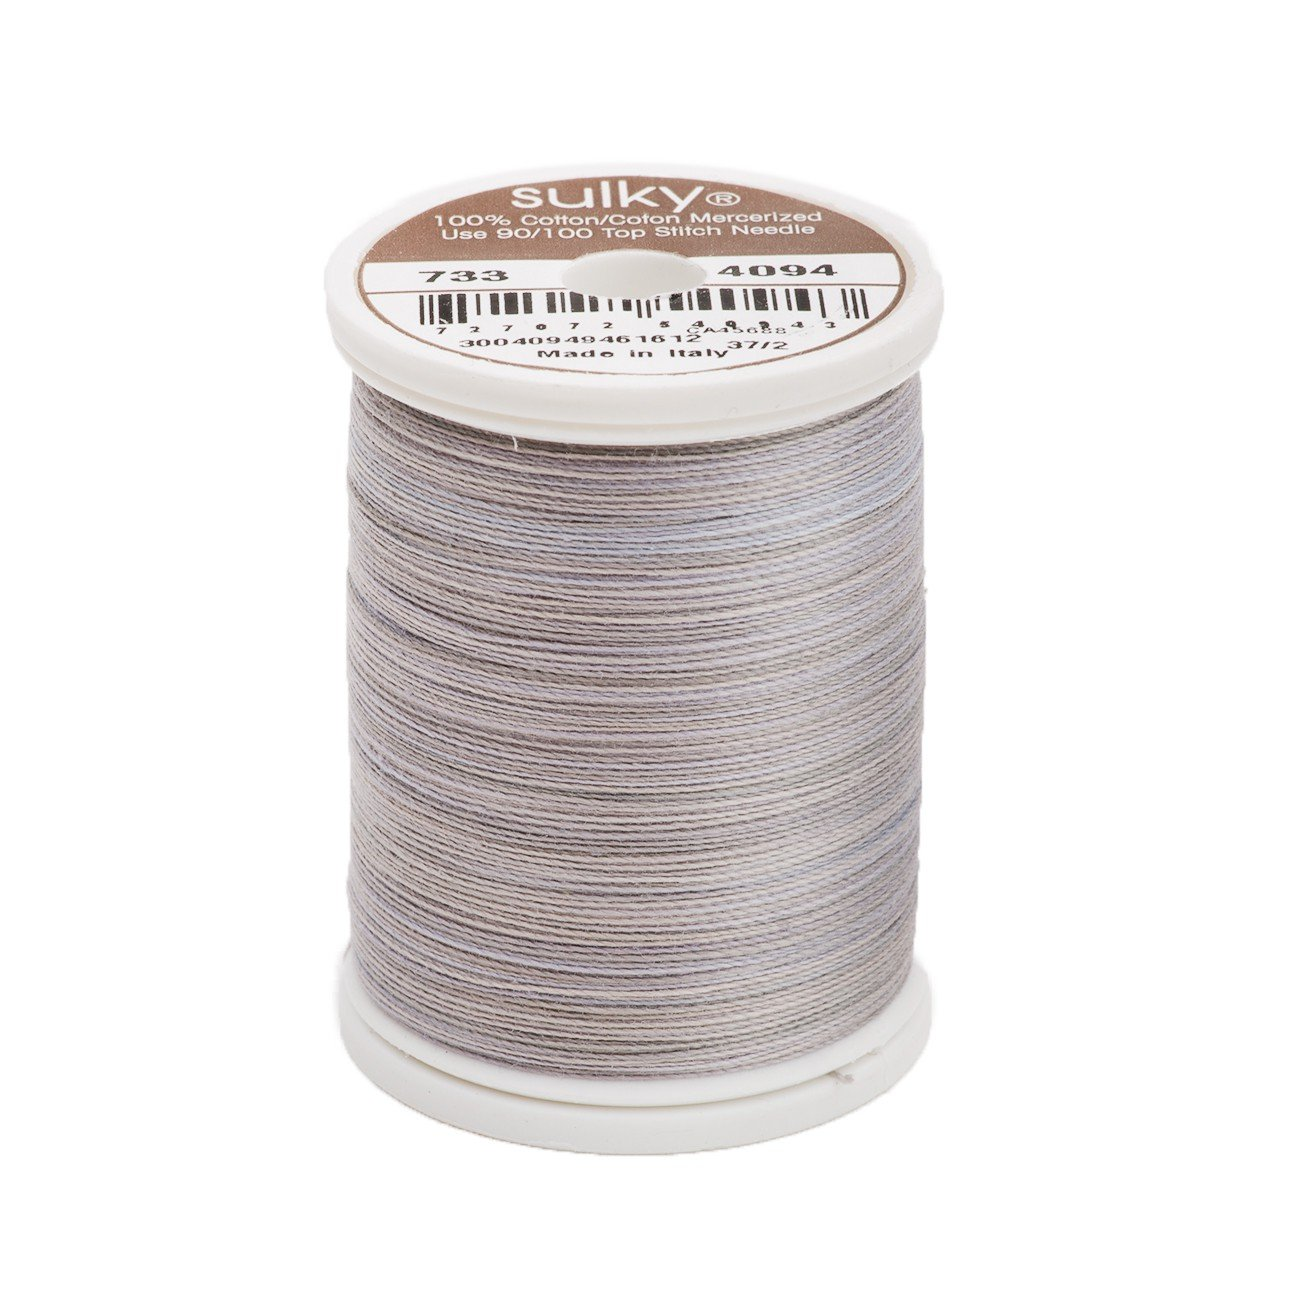 Sulky Of America 400d 30wt 2-Ply Blendables Cotton Thread, 500 yd, Granite by Sulky Of America   B006W6UQP0